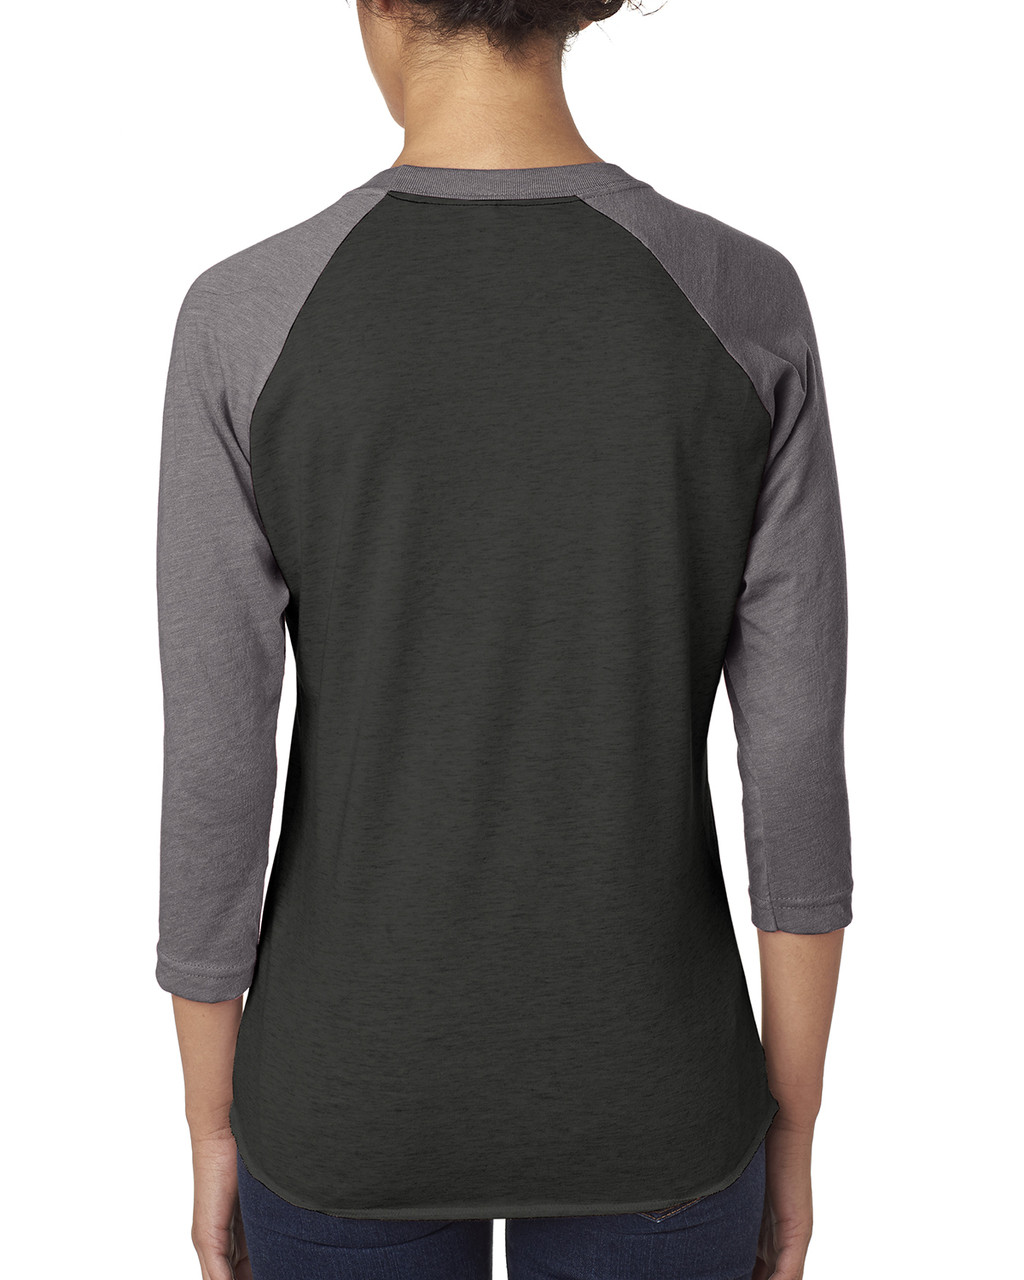 Heather/Vintage Black - back 6051 Next Level Unisex Tri-Blend 3/4-Sleeve Raglan Tee | Blankclothing.ca